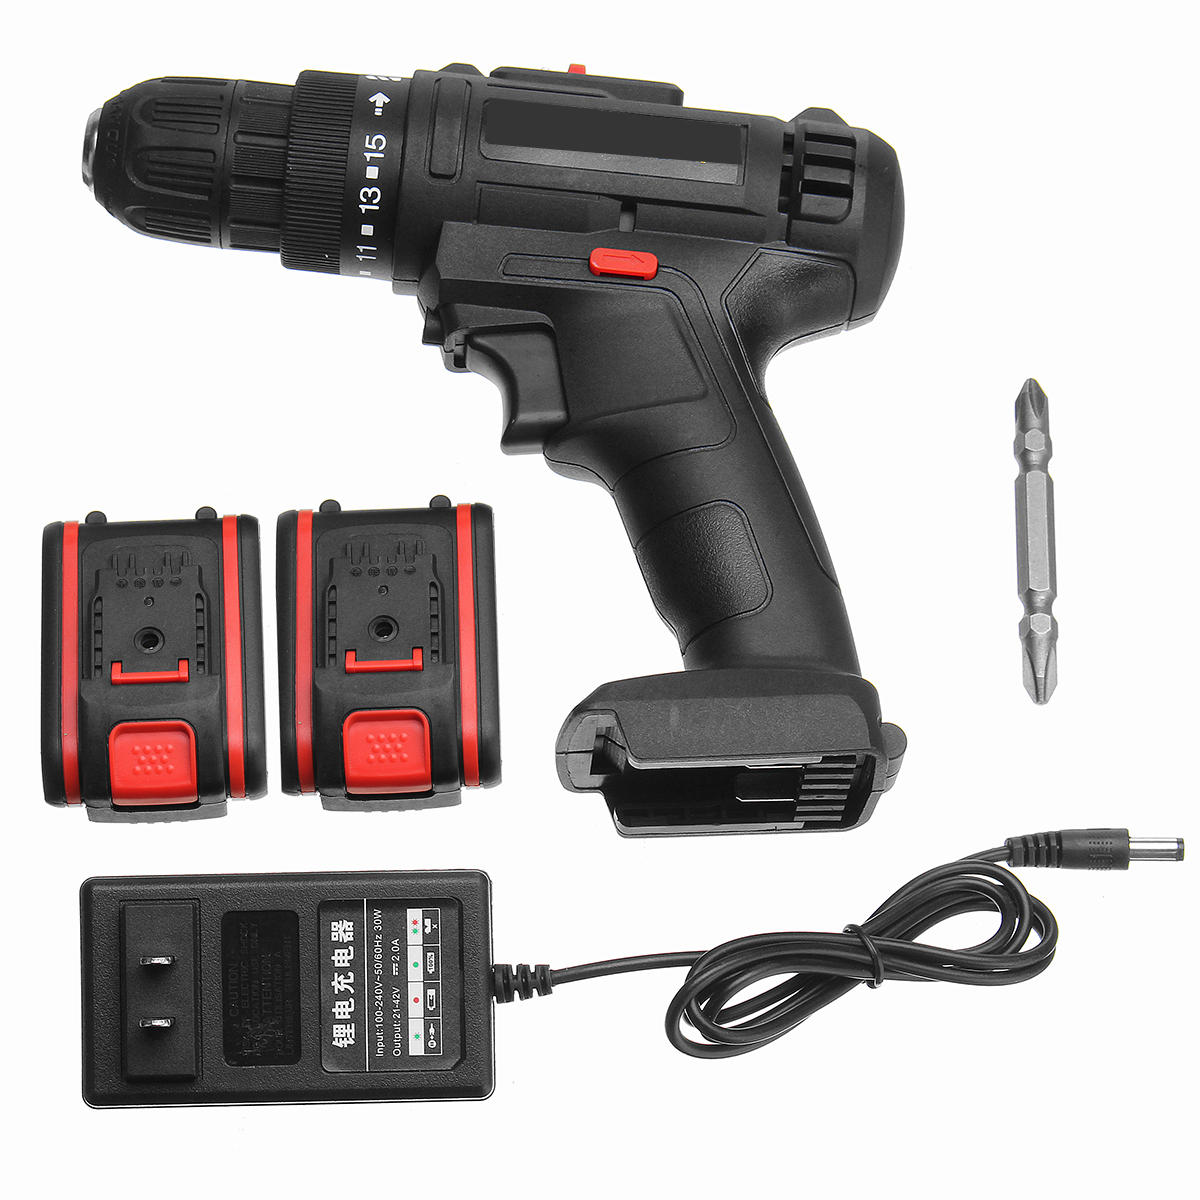 68VF Cordless Lithium-Ion Drill/Driver Rechargable Electric Drill Adjustable 3200r/min 2 Speed Hand Drill With 1 Or 2 Battery